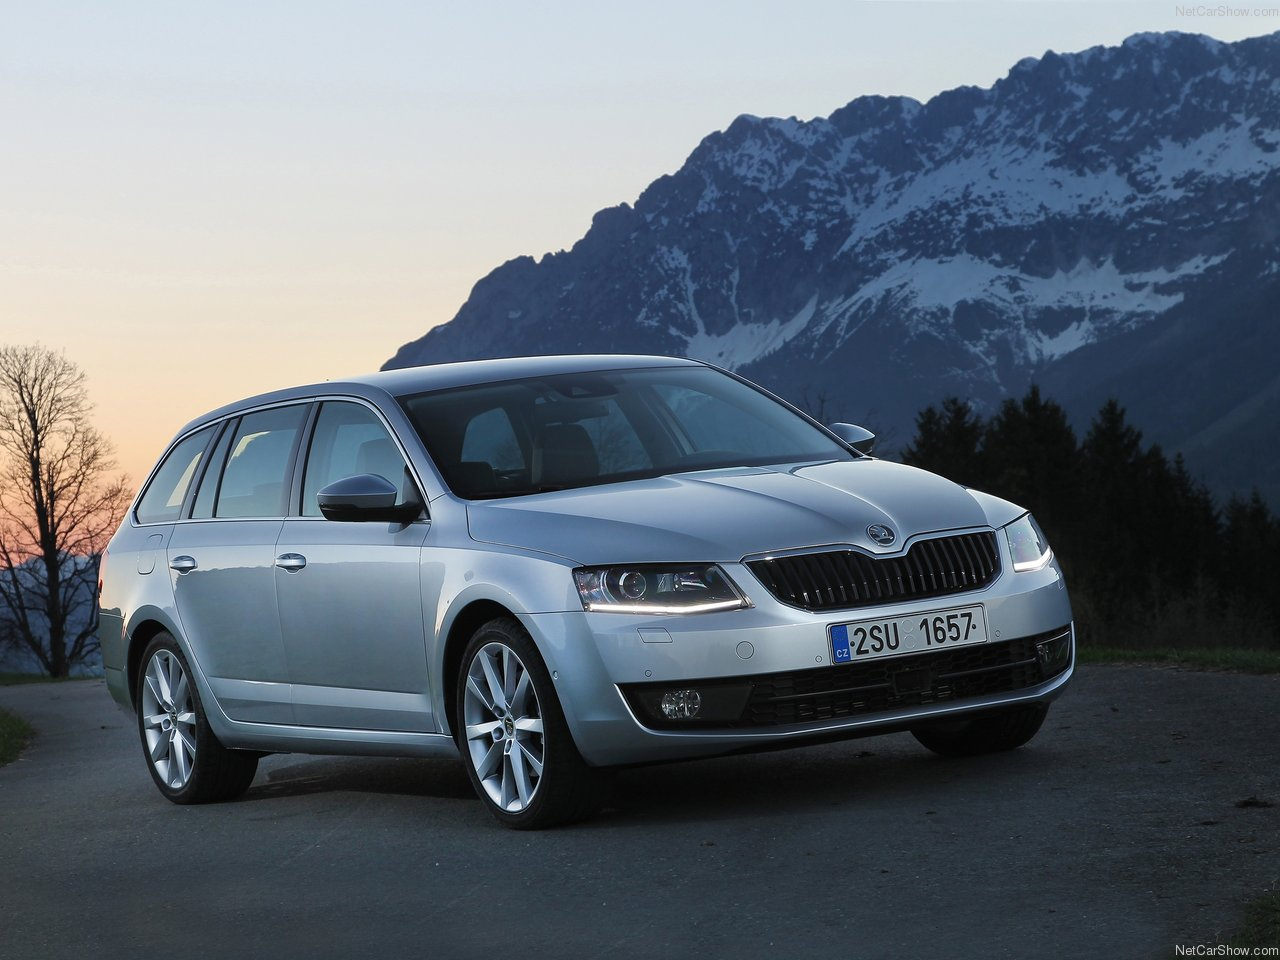 skoda octavia combi 2014 netcarshow. Black Bedroom Furniture Sets. Home Design Ideas